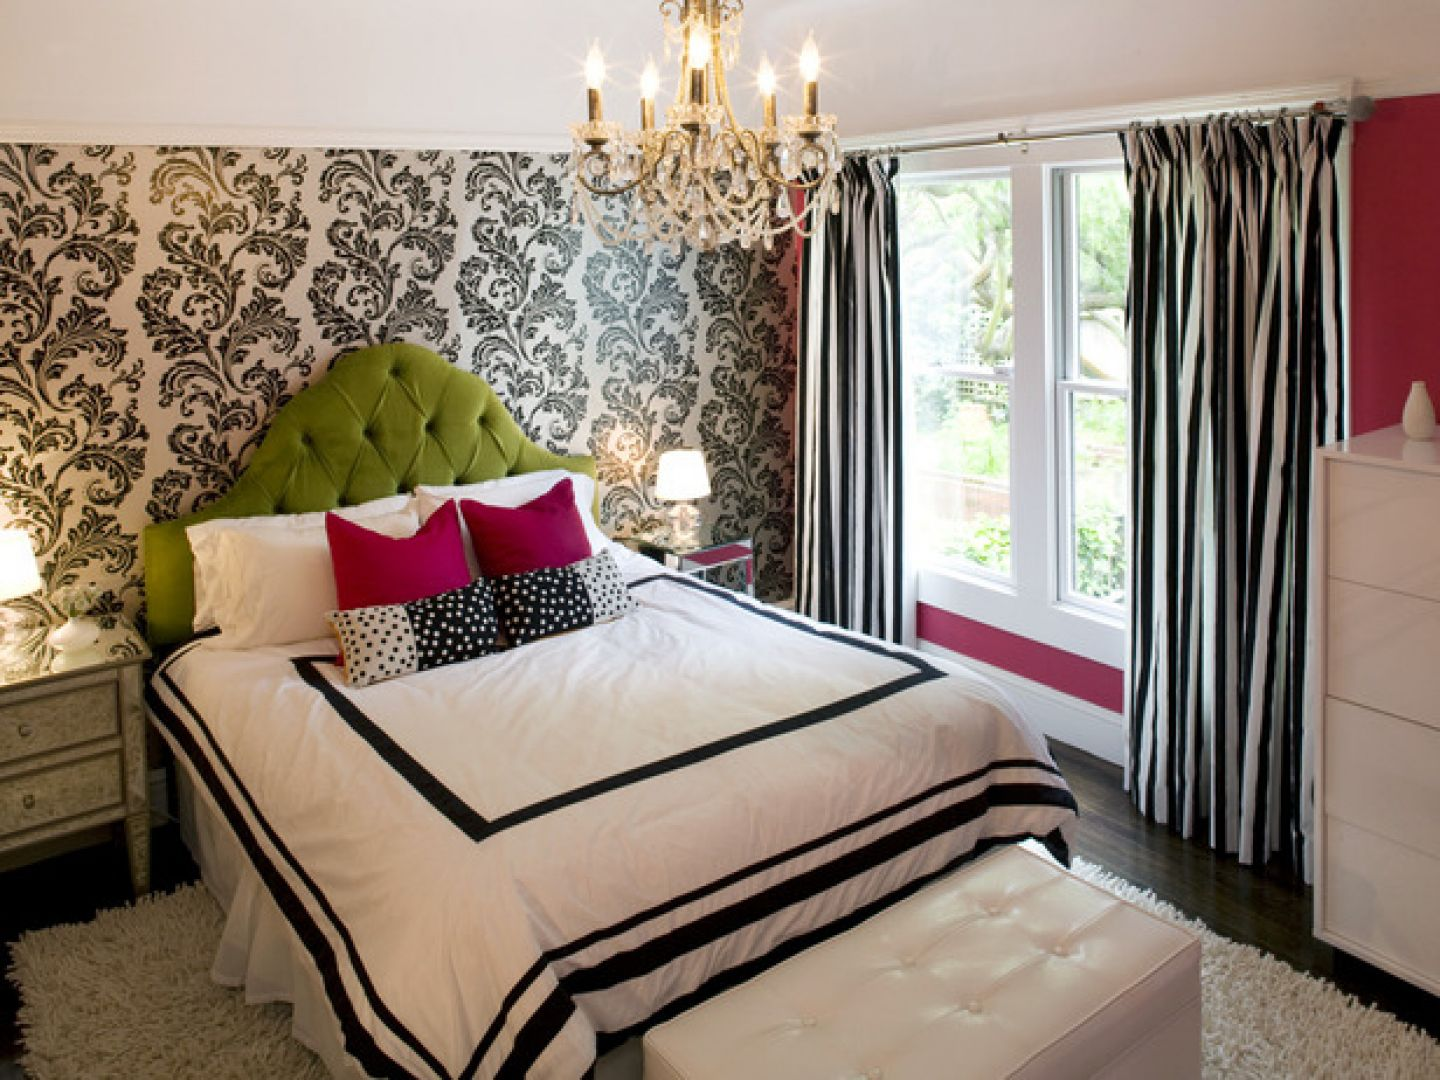 Stunning Background also Bed Under Chandelier For Decorating Girls Bedroom